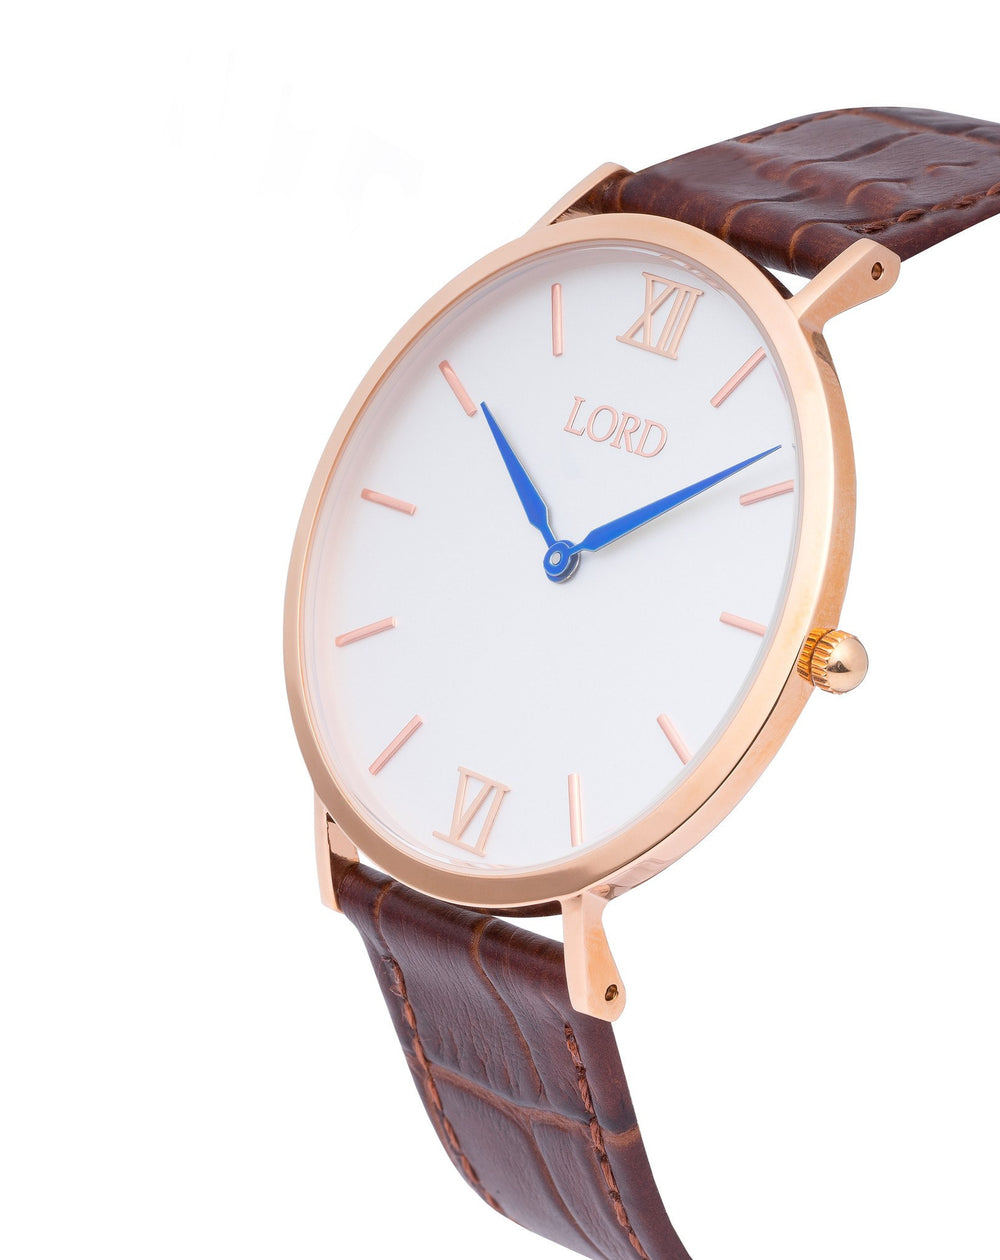 Classic Brown Watches White Face Blue Hands Leather Strap